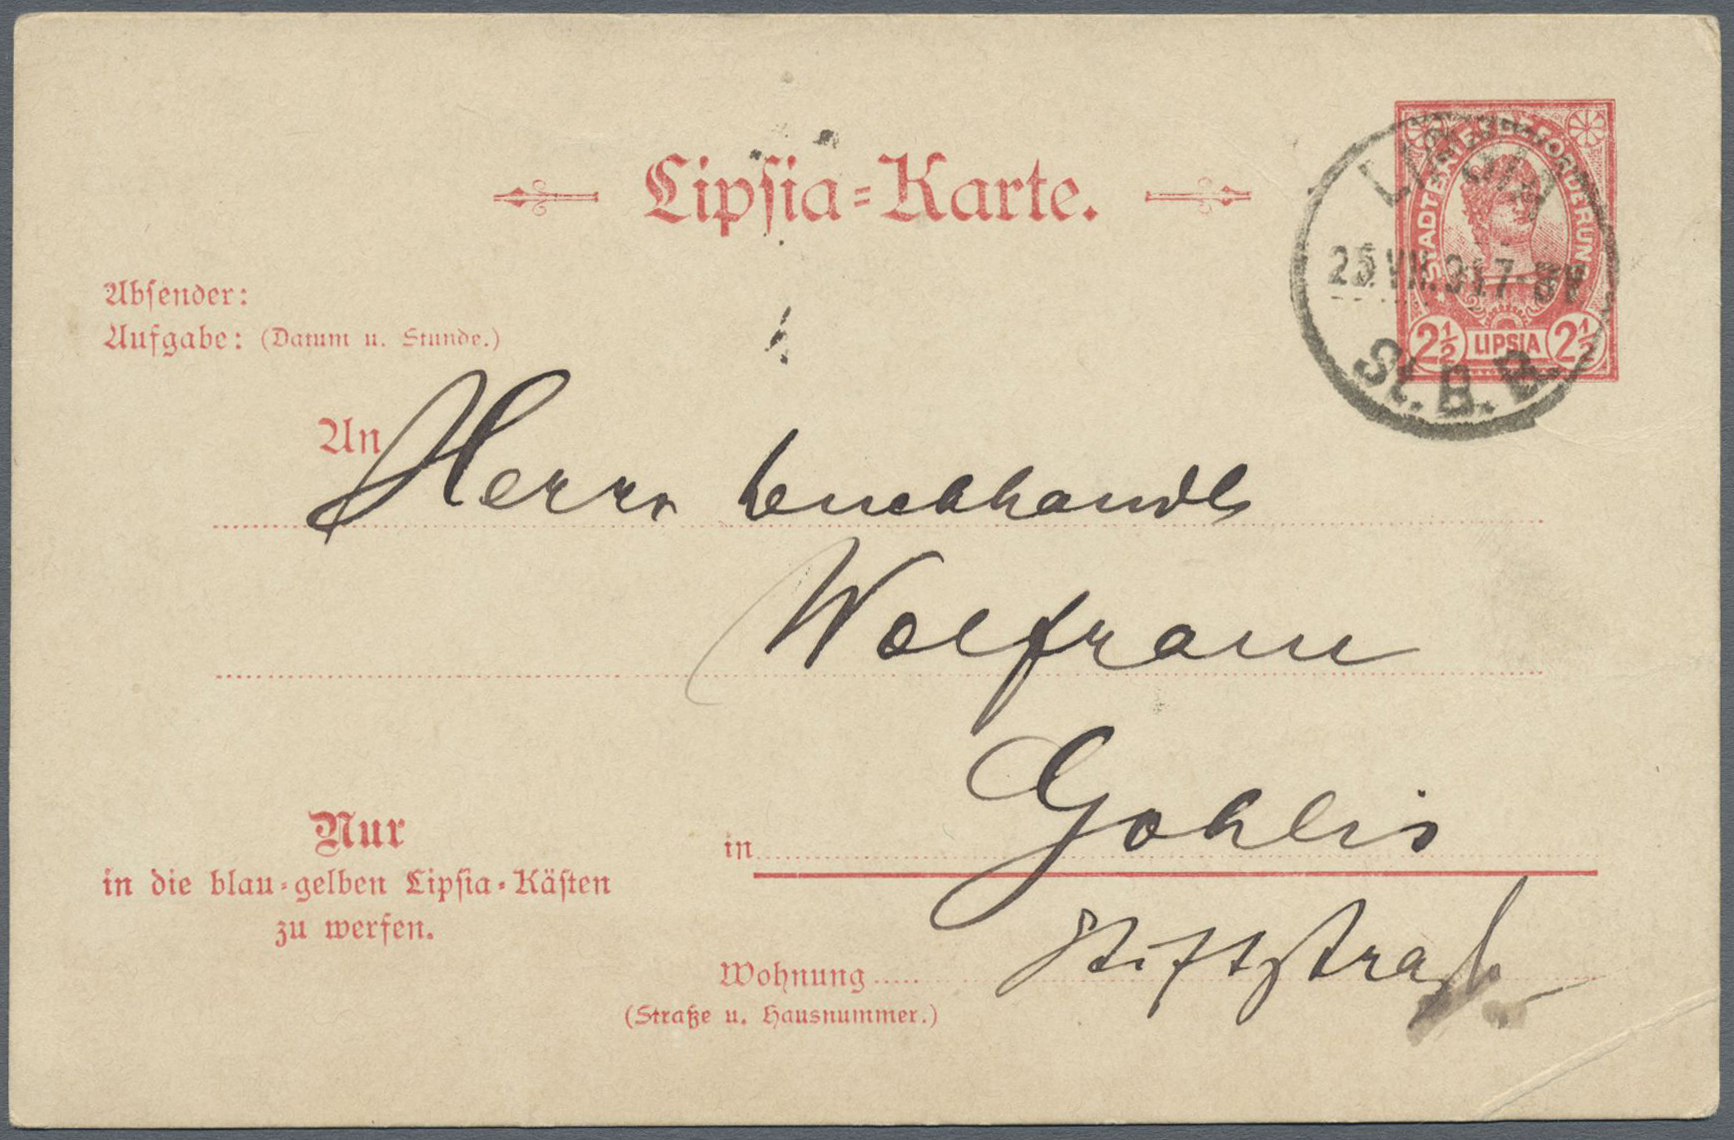 Lot 34114 - nachlässe  -  Auktionshaus Christoph Gärtner GmbH & Co. KG Collections Germany,  Collections Supplement, Surprise boxes #39 Day 7